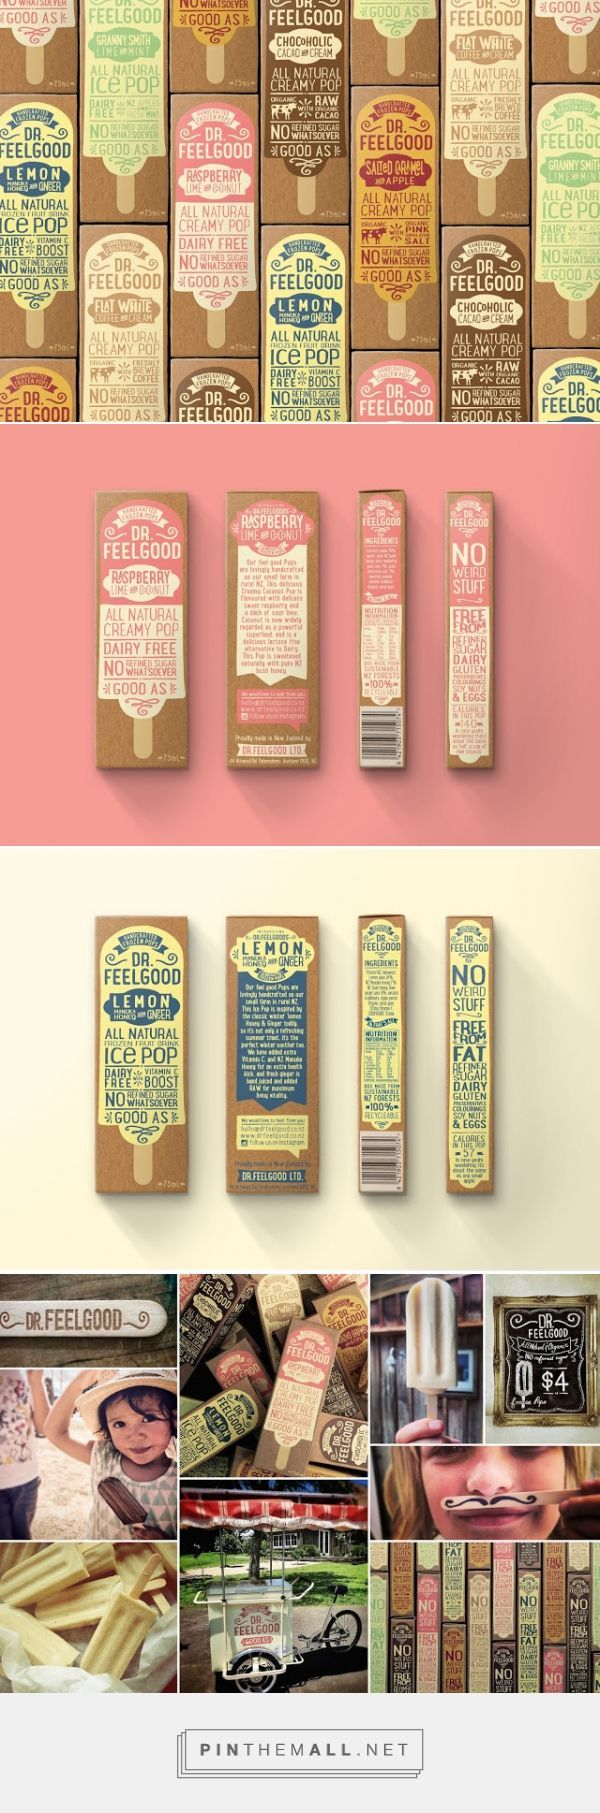 Dr Feelgood #IcePops #packaging designed by Brandwagon​ - http://www.packagingoftheworld.com/2015/09/dr-feelgood-ice-pops.html